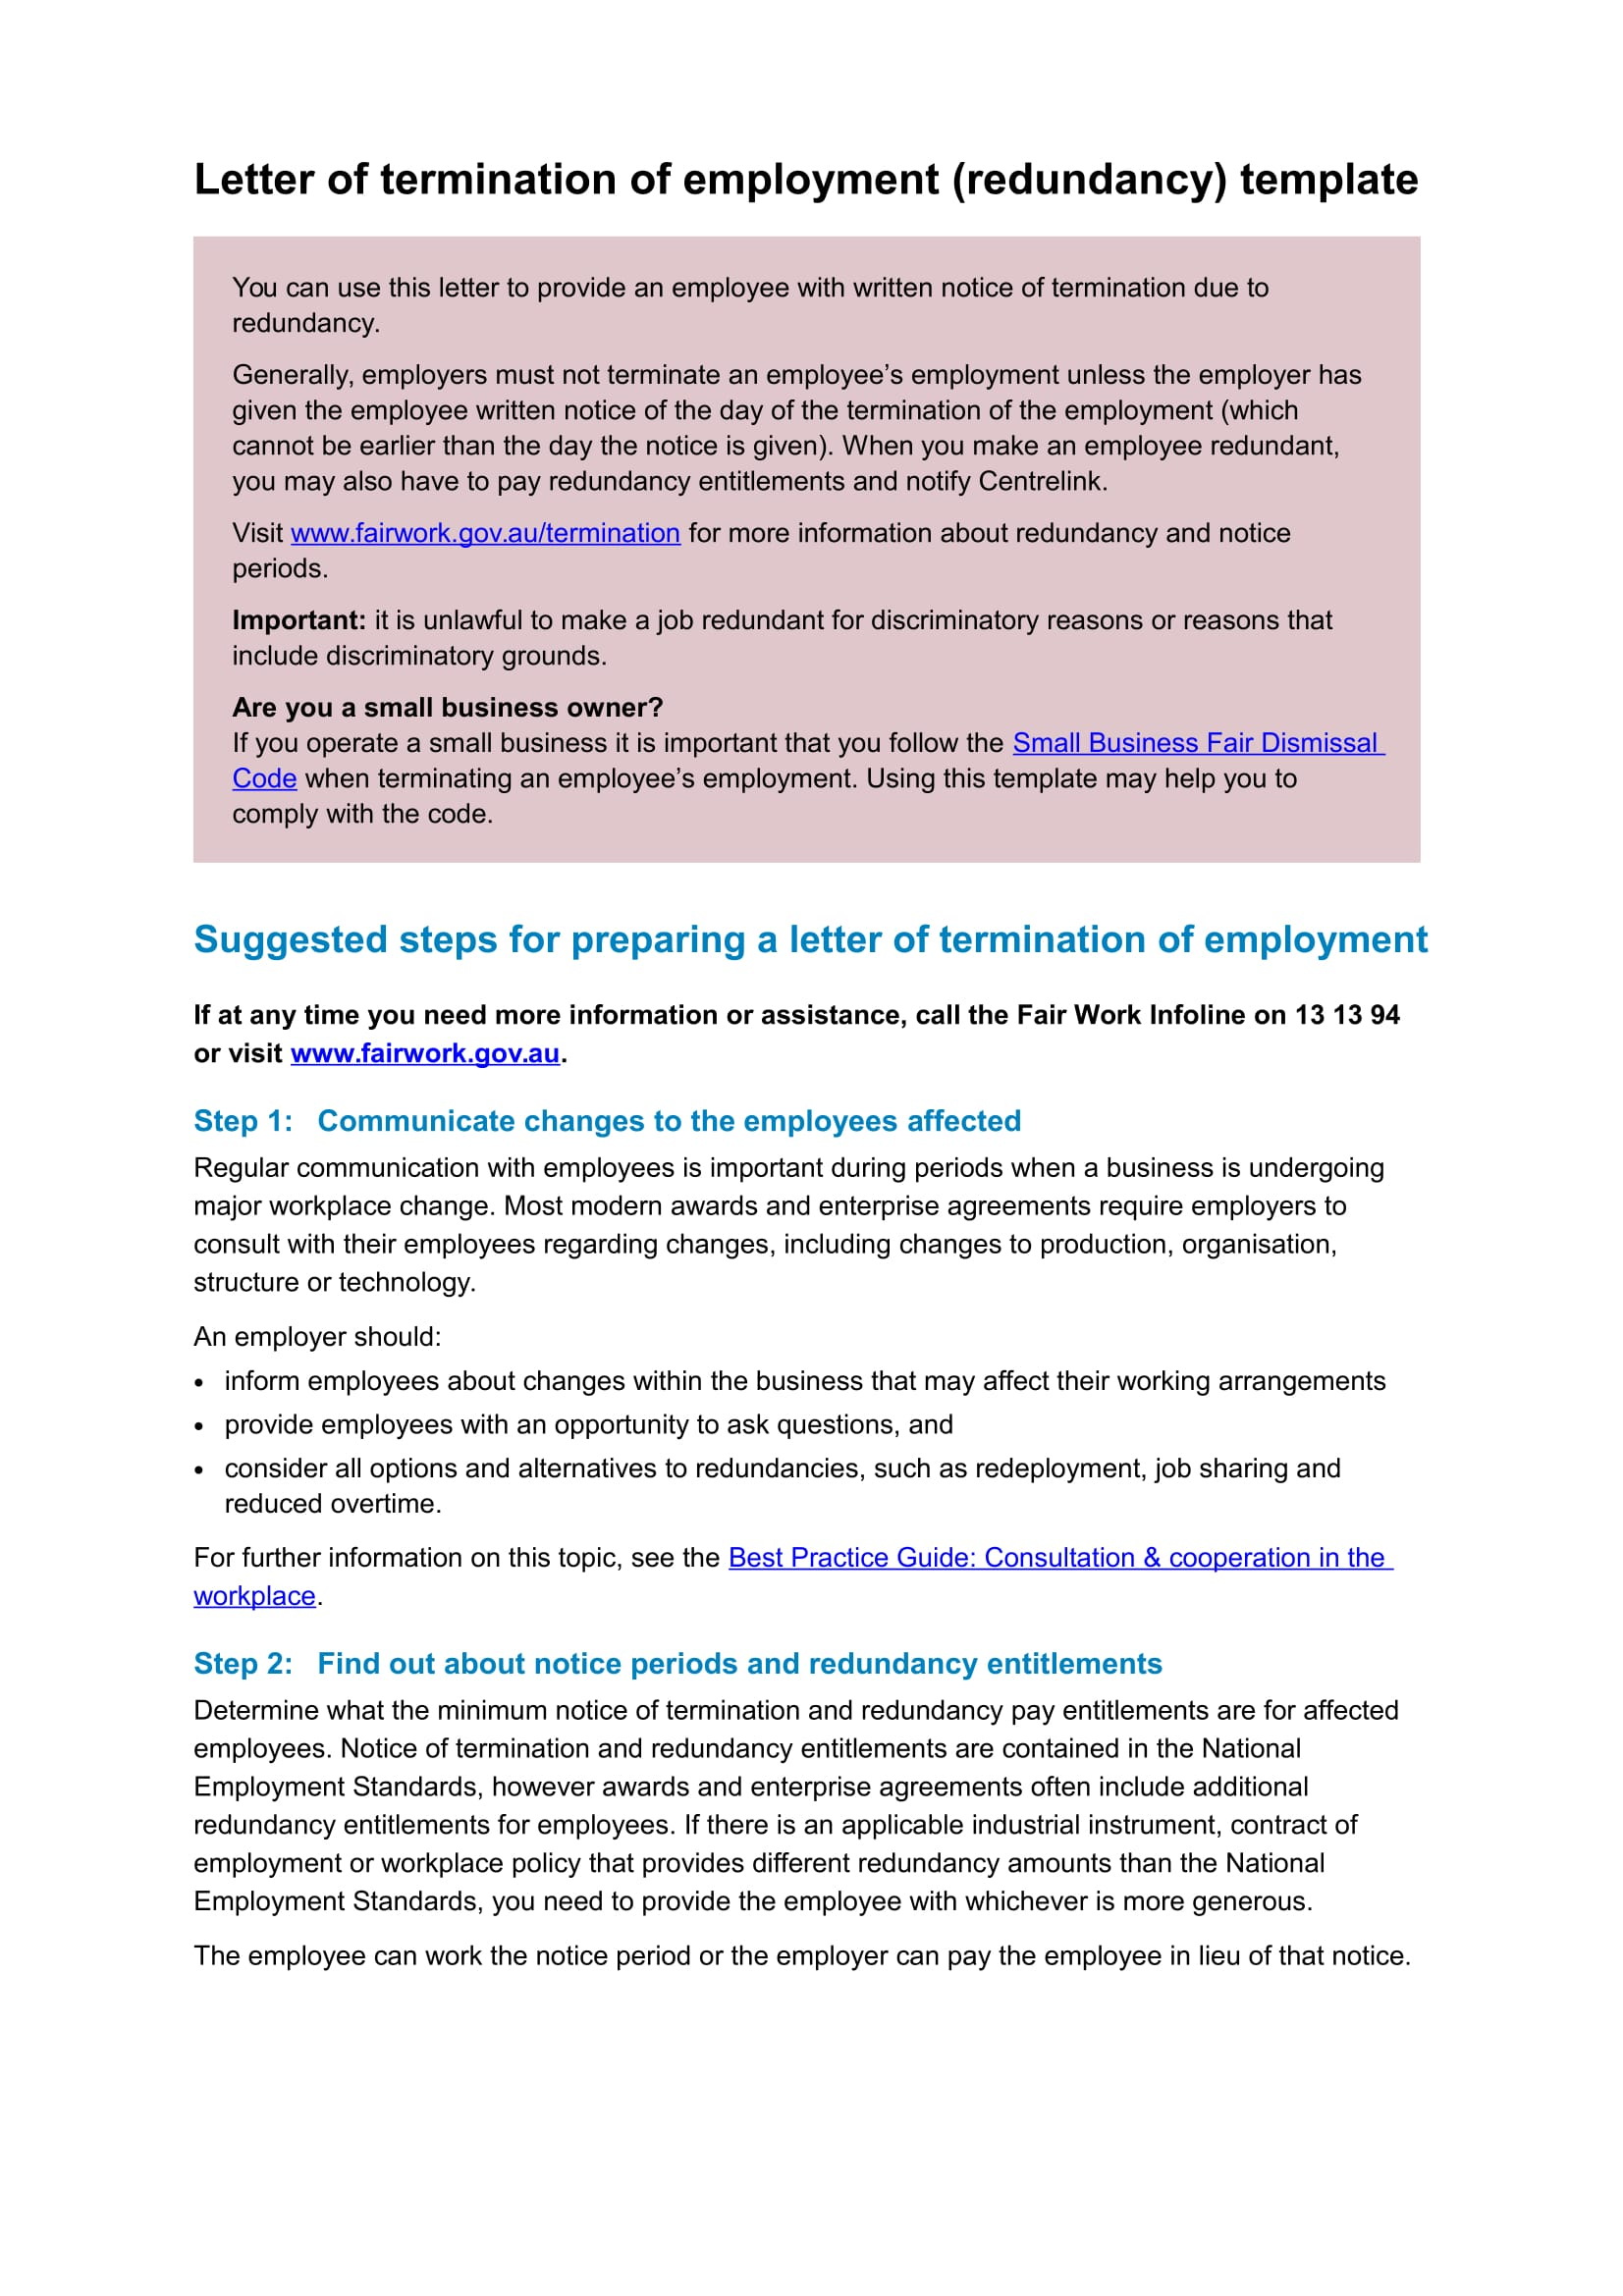 letter of termination of employment redundancy template